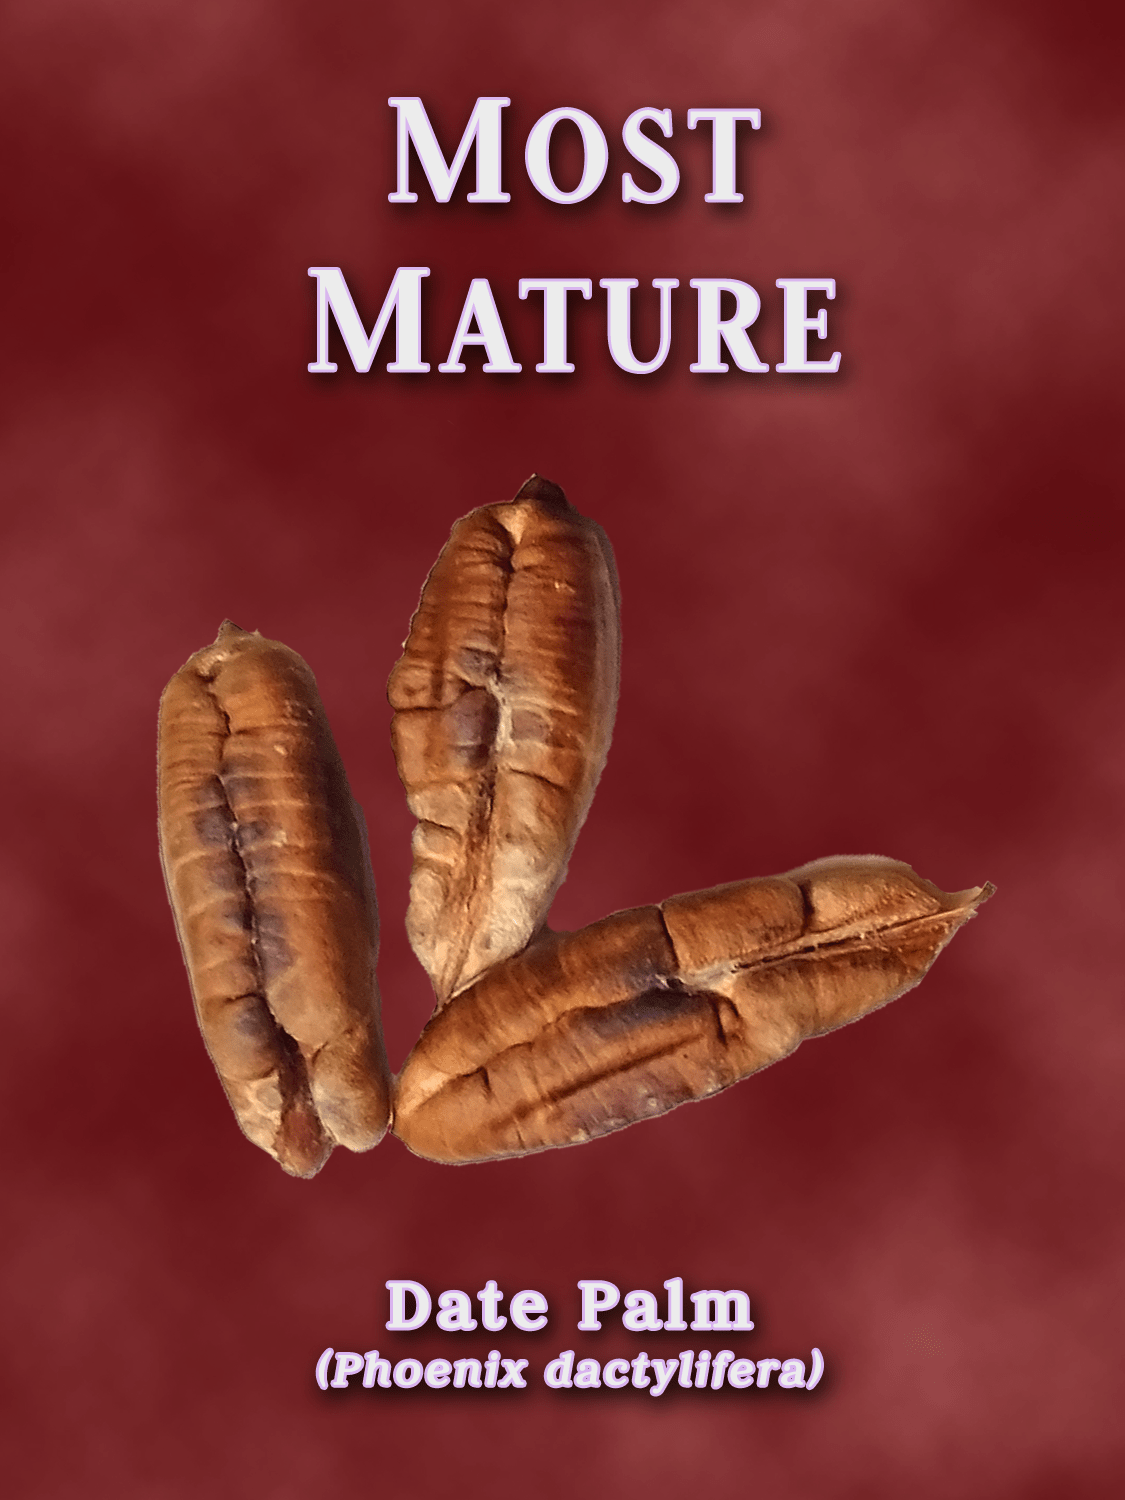 a yearbook style portrait of a date palm seed